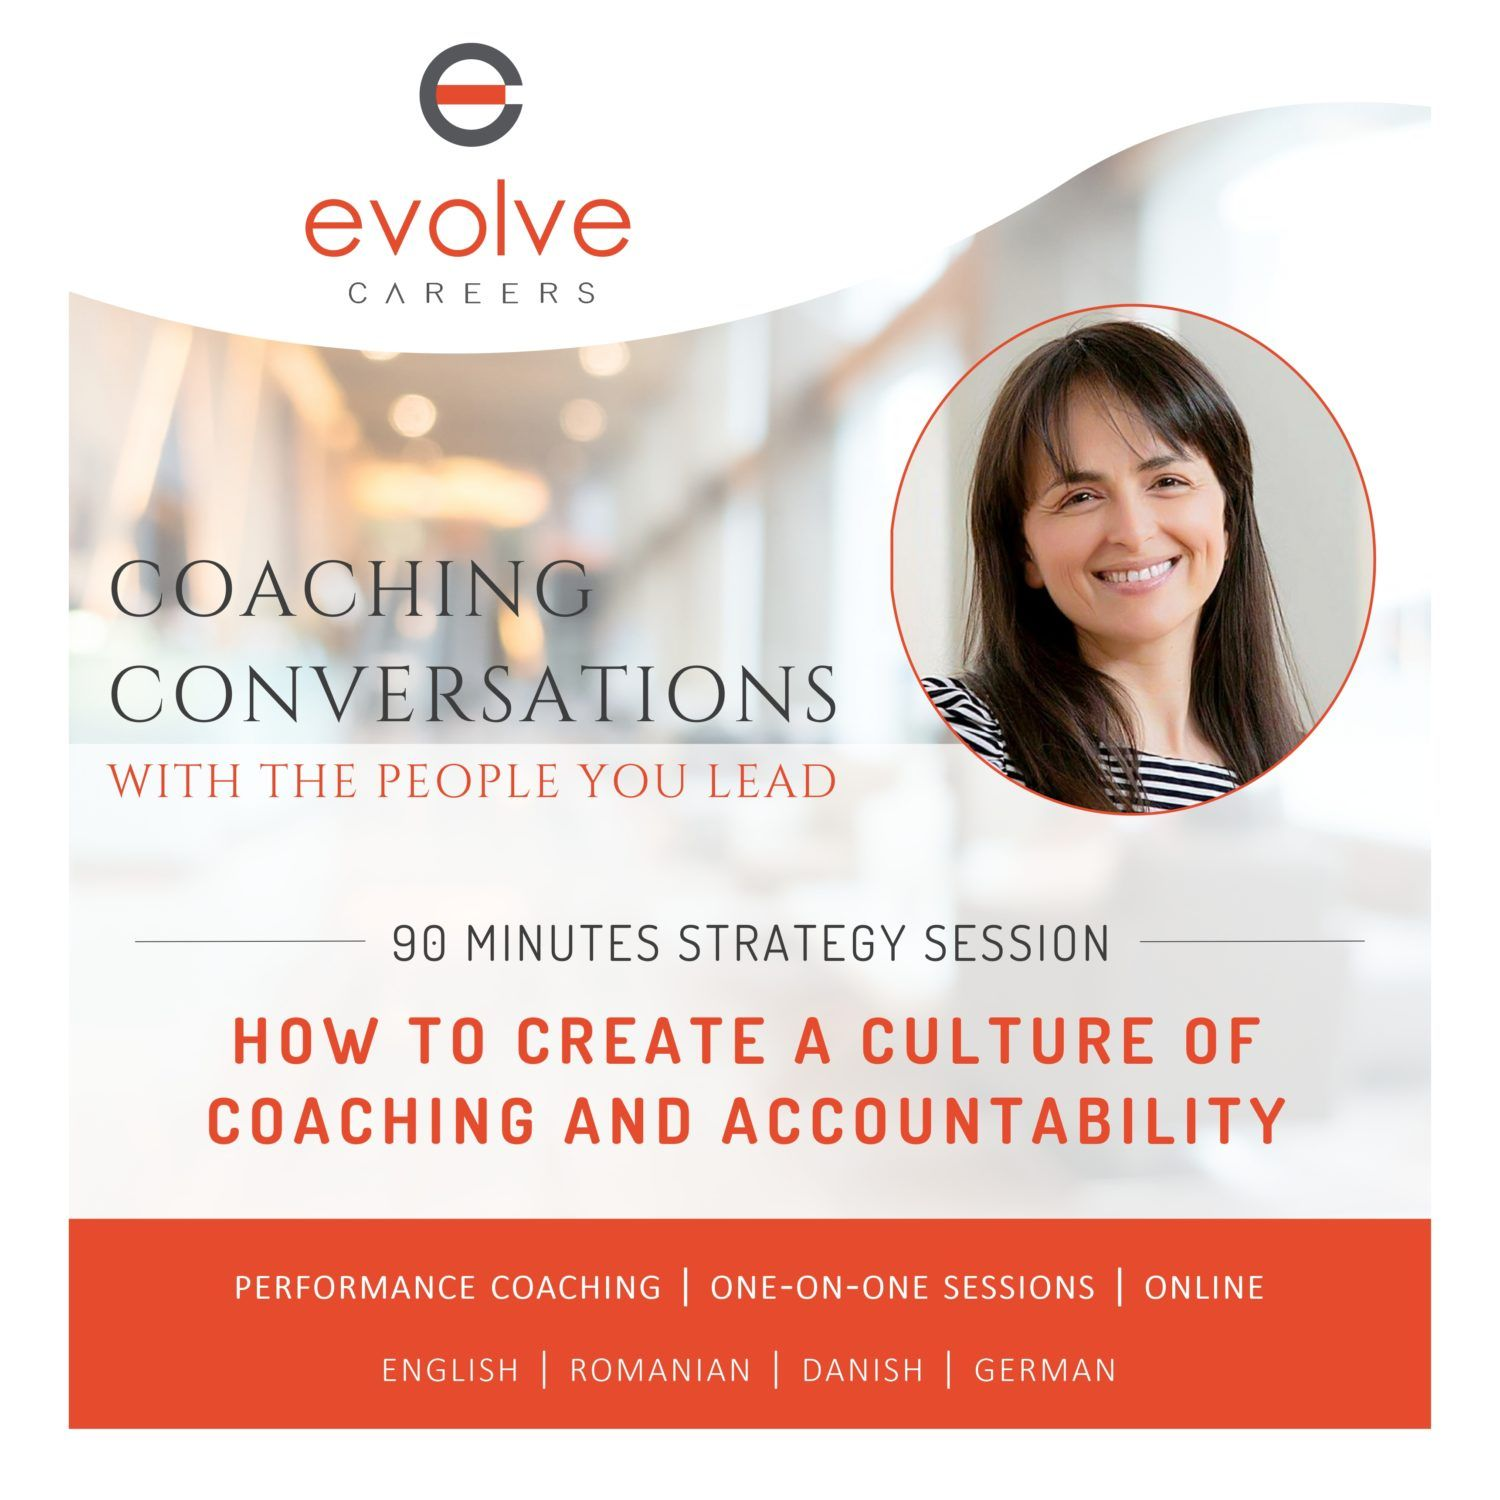 How to Create a Culture of Coaching and Accountability